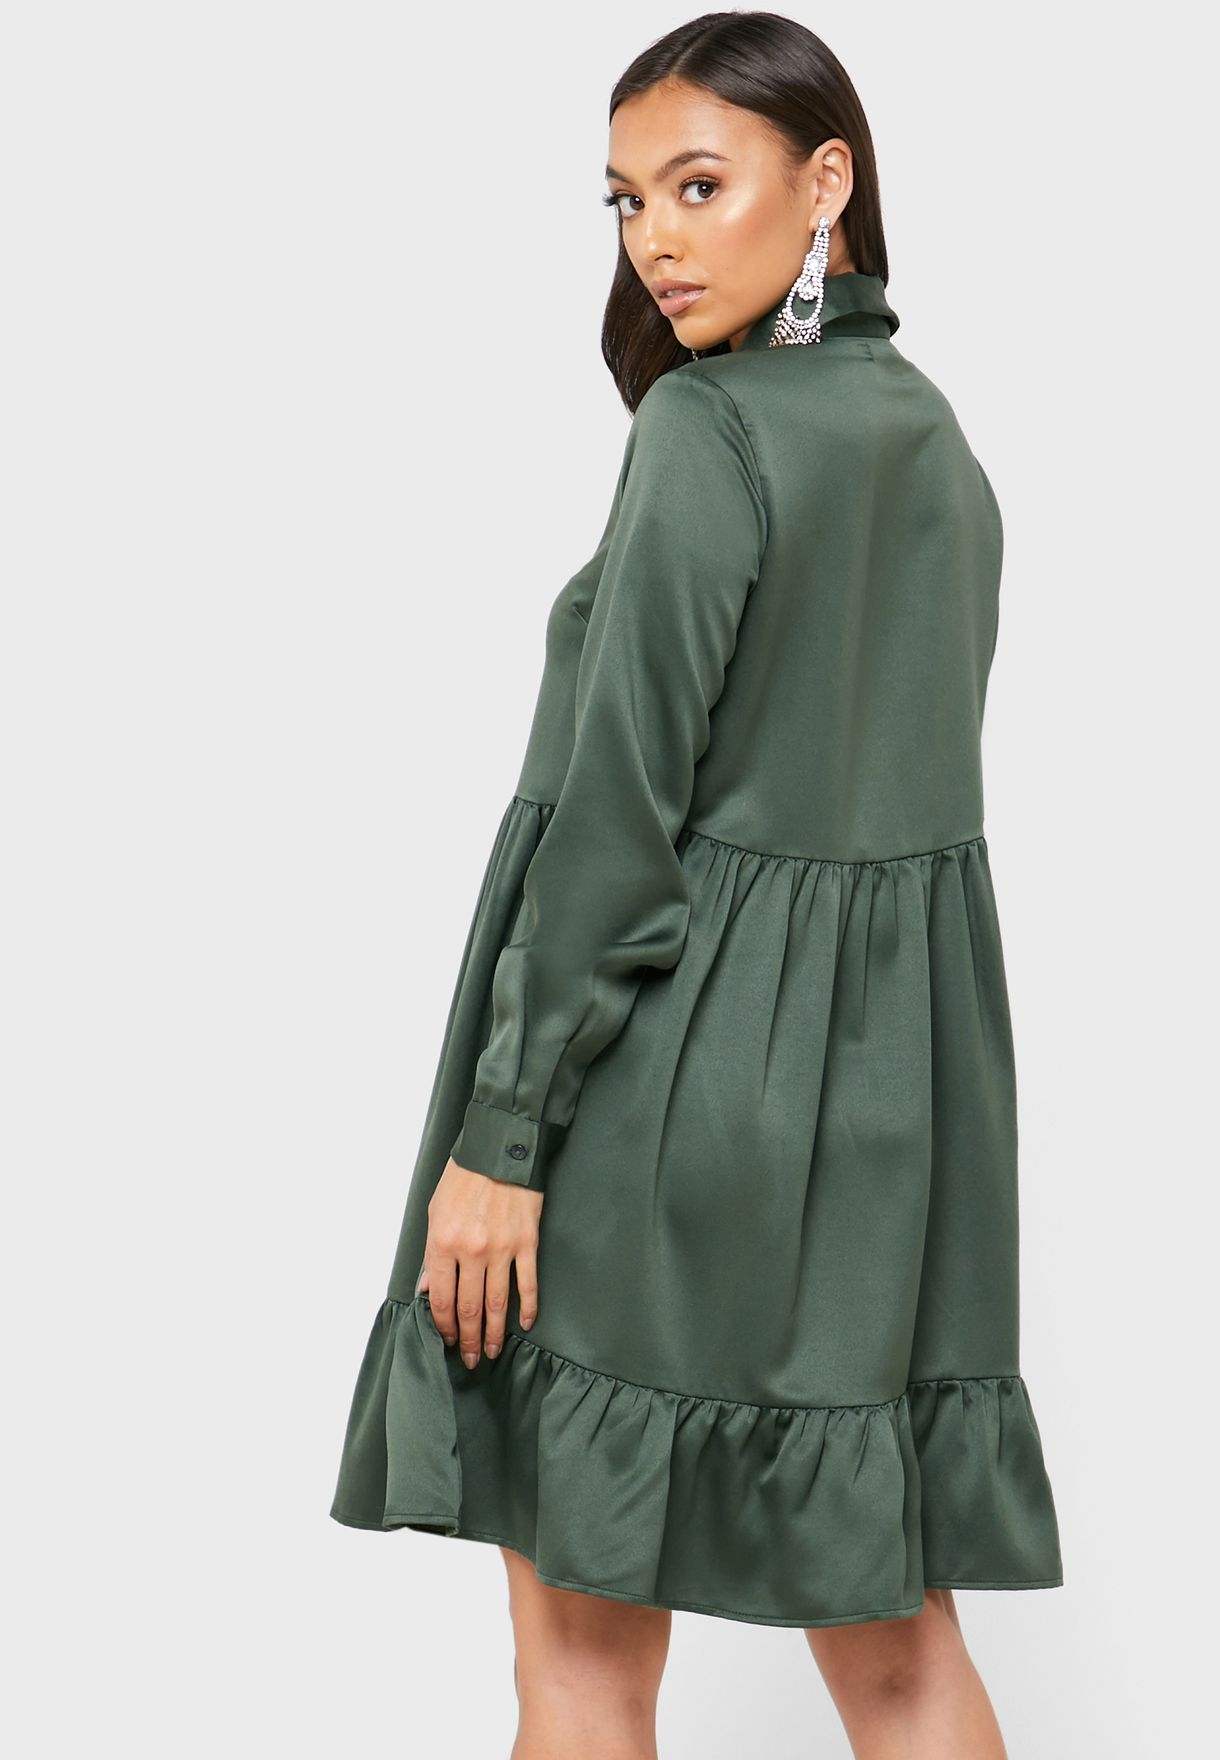 Ruffle Hem Placket Shirt Dress